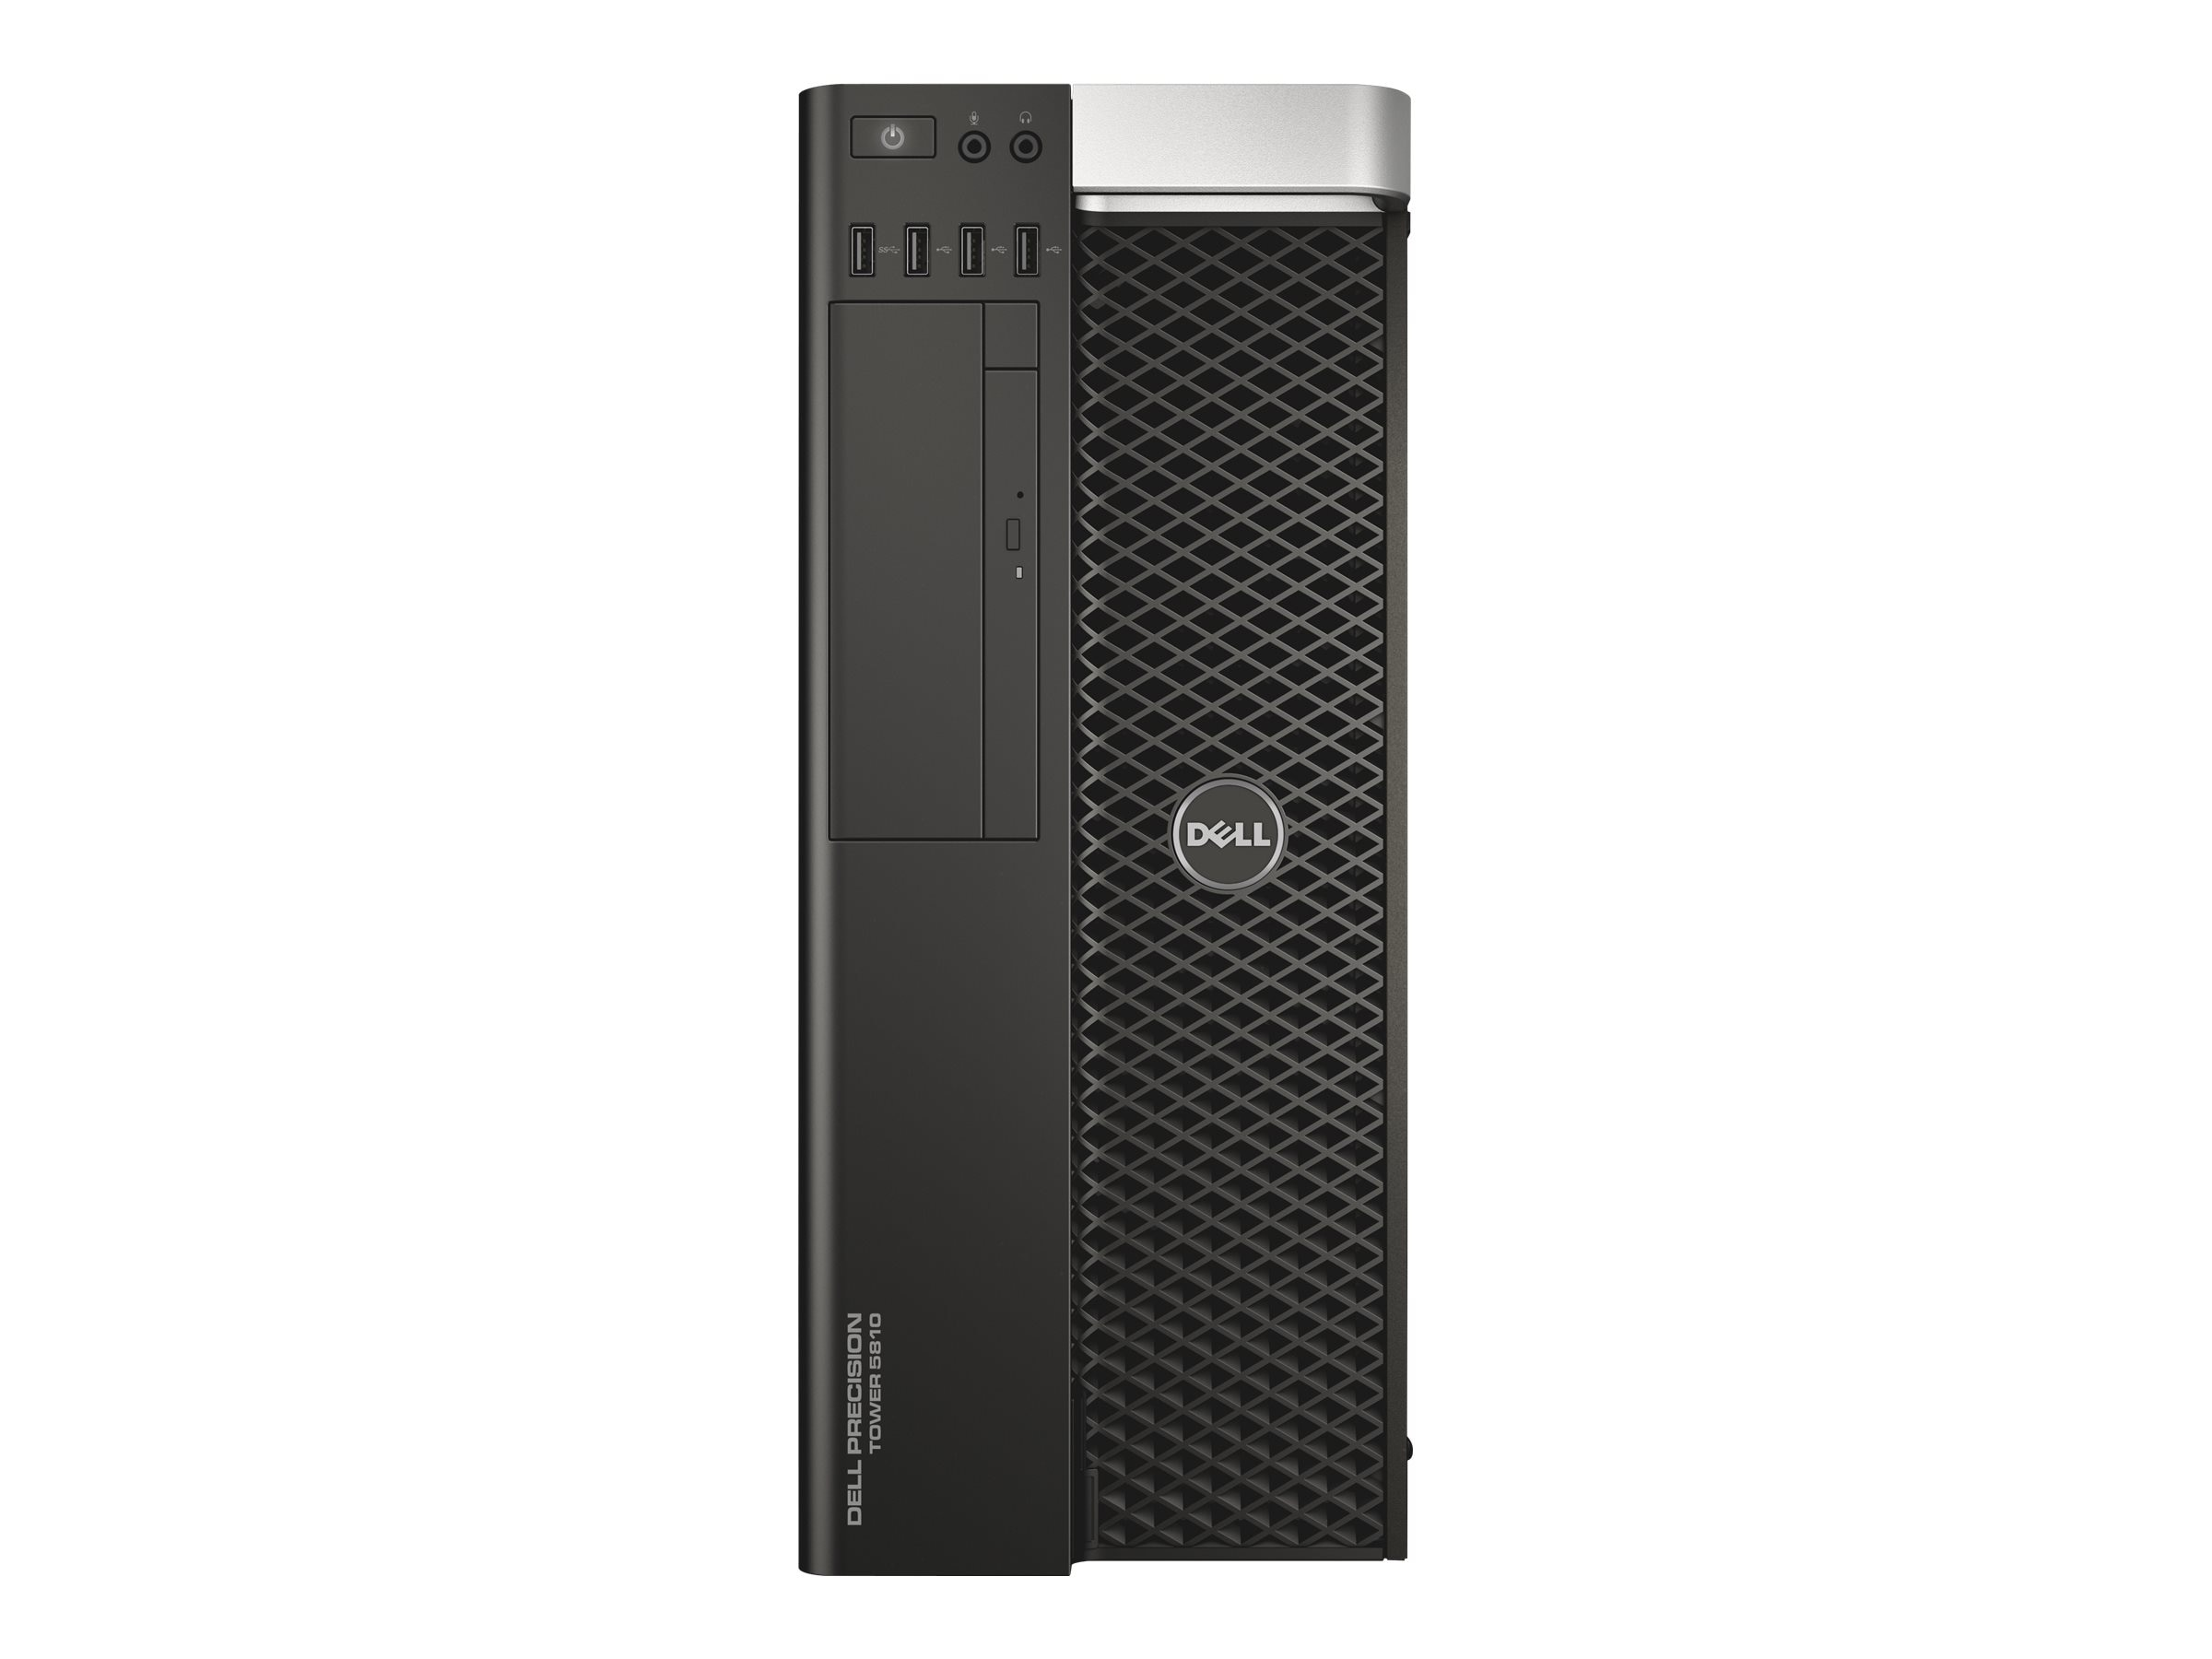 Dell Precision 5810 3.5GHz Xeon Microsoft Windows 7 Professional 64-bit Edition   Windows 10 Pro, TX42G